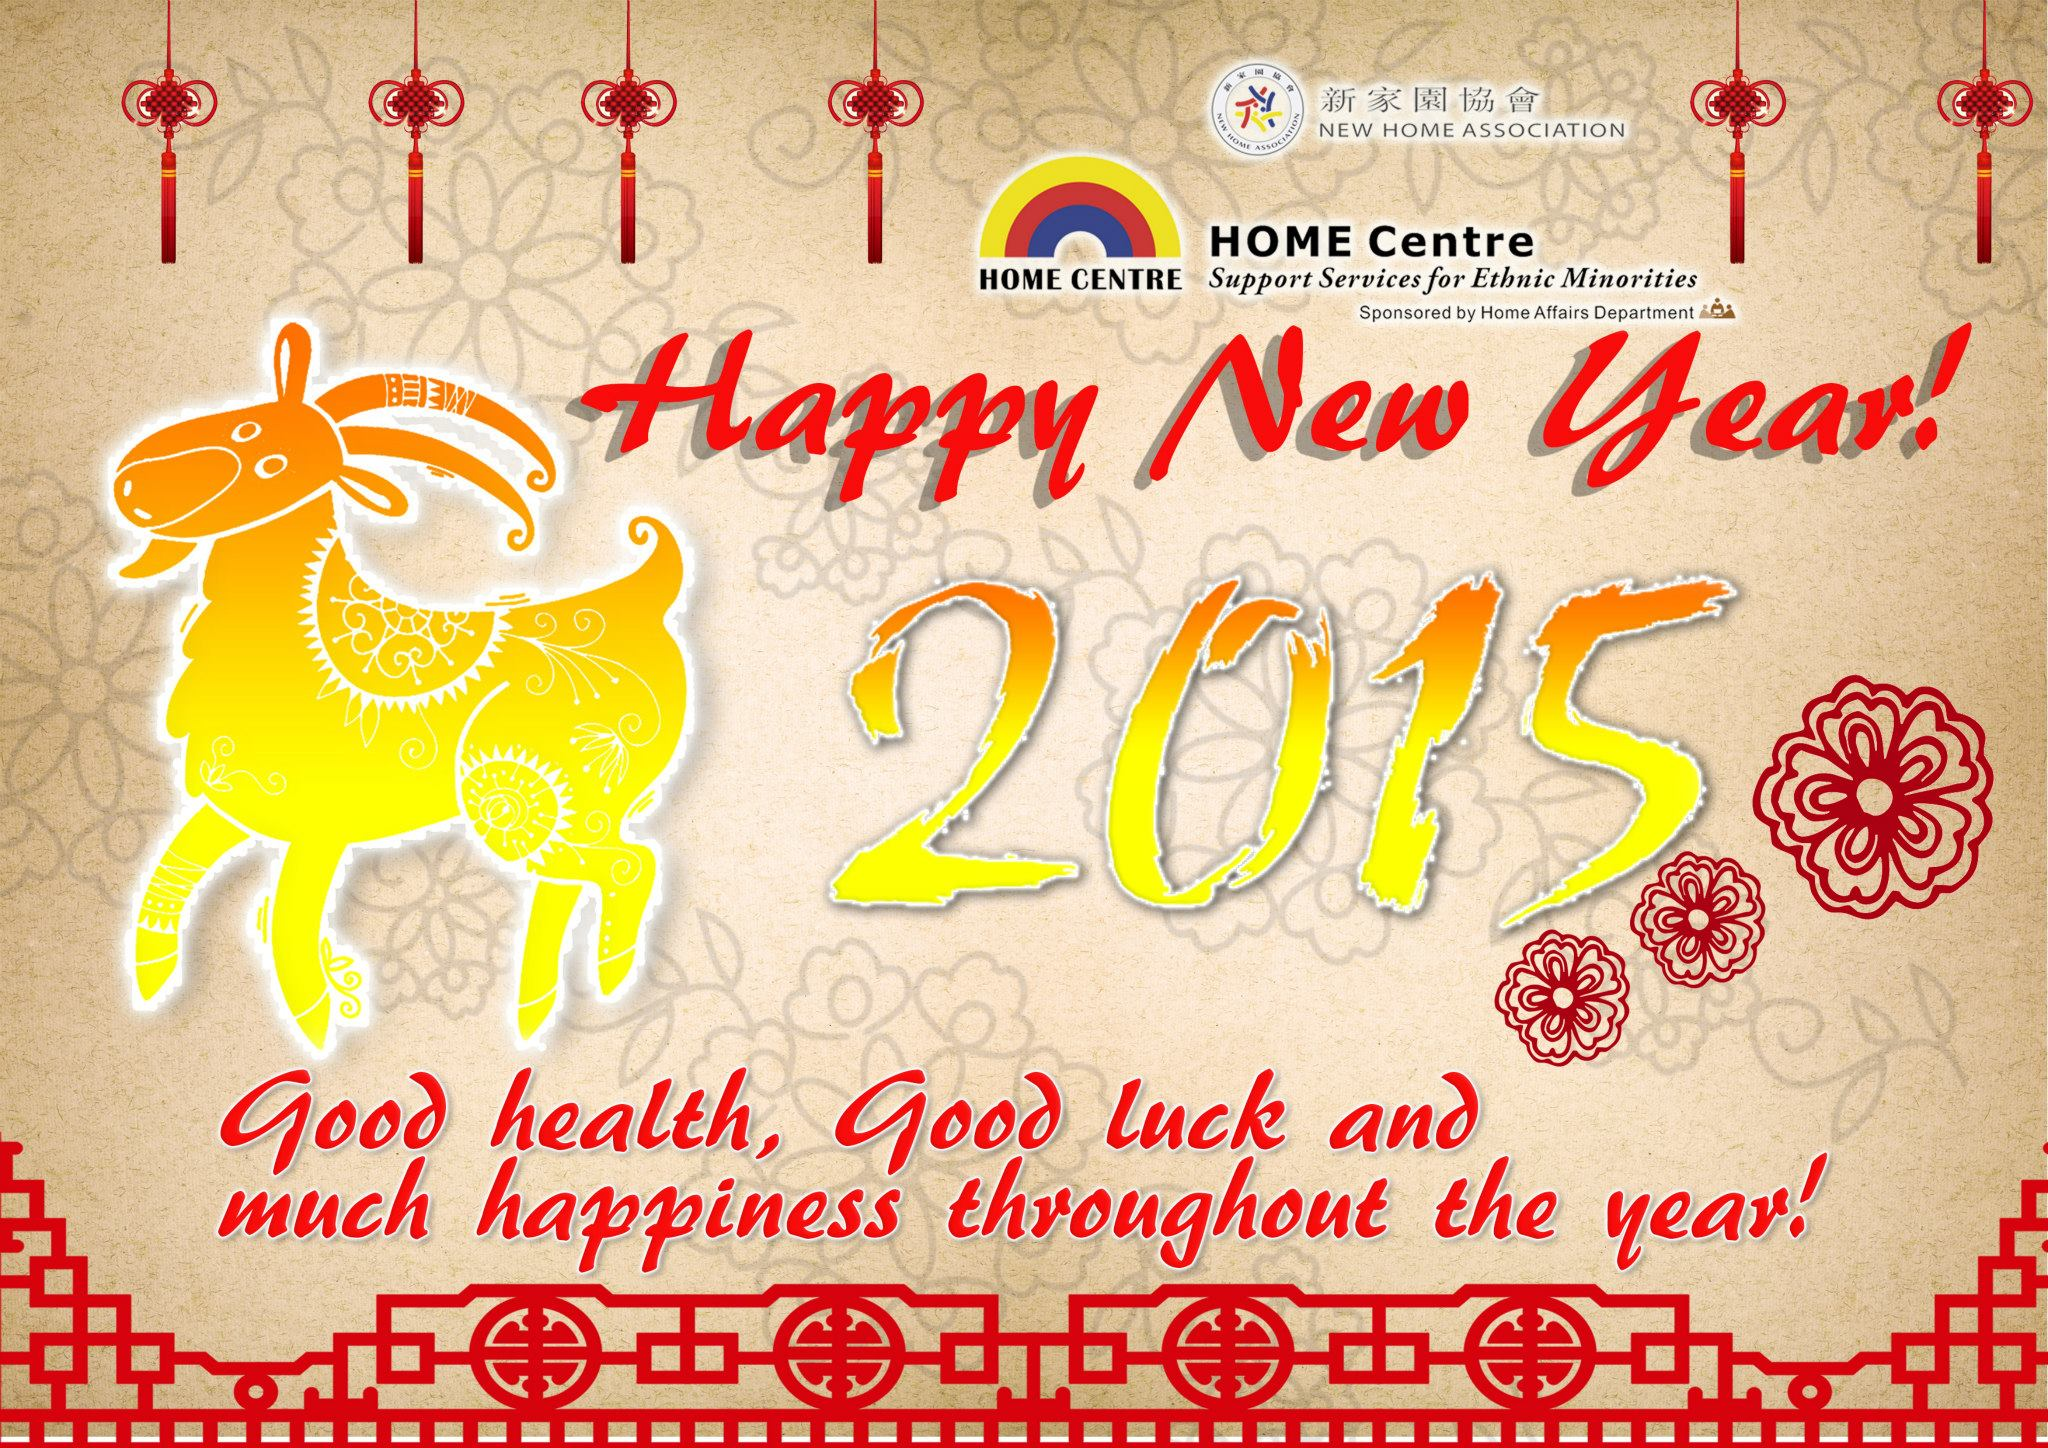 New home association home centre wishes you a happy new year 2015 kristyandbryce Images